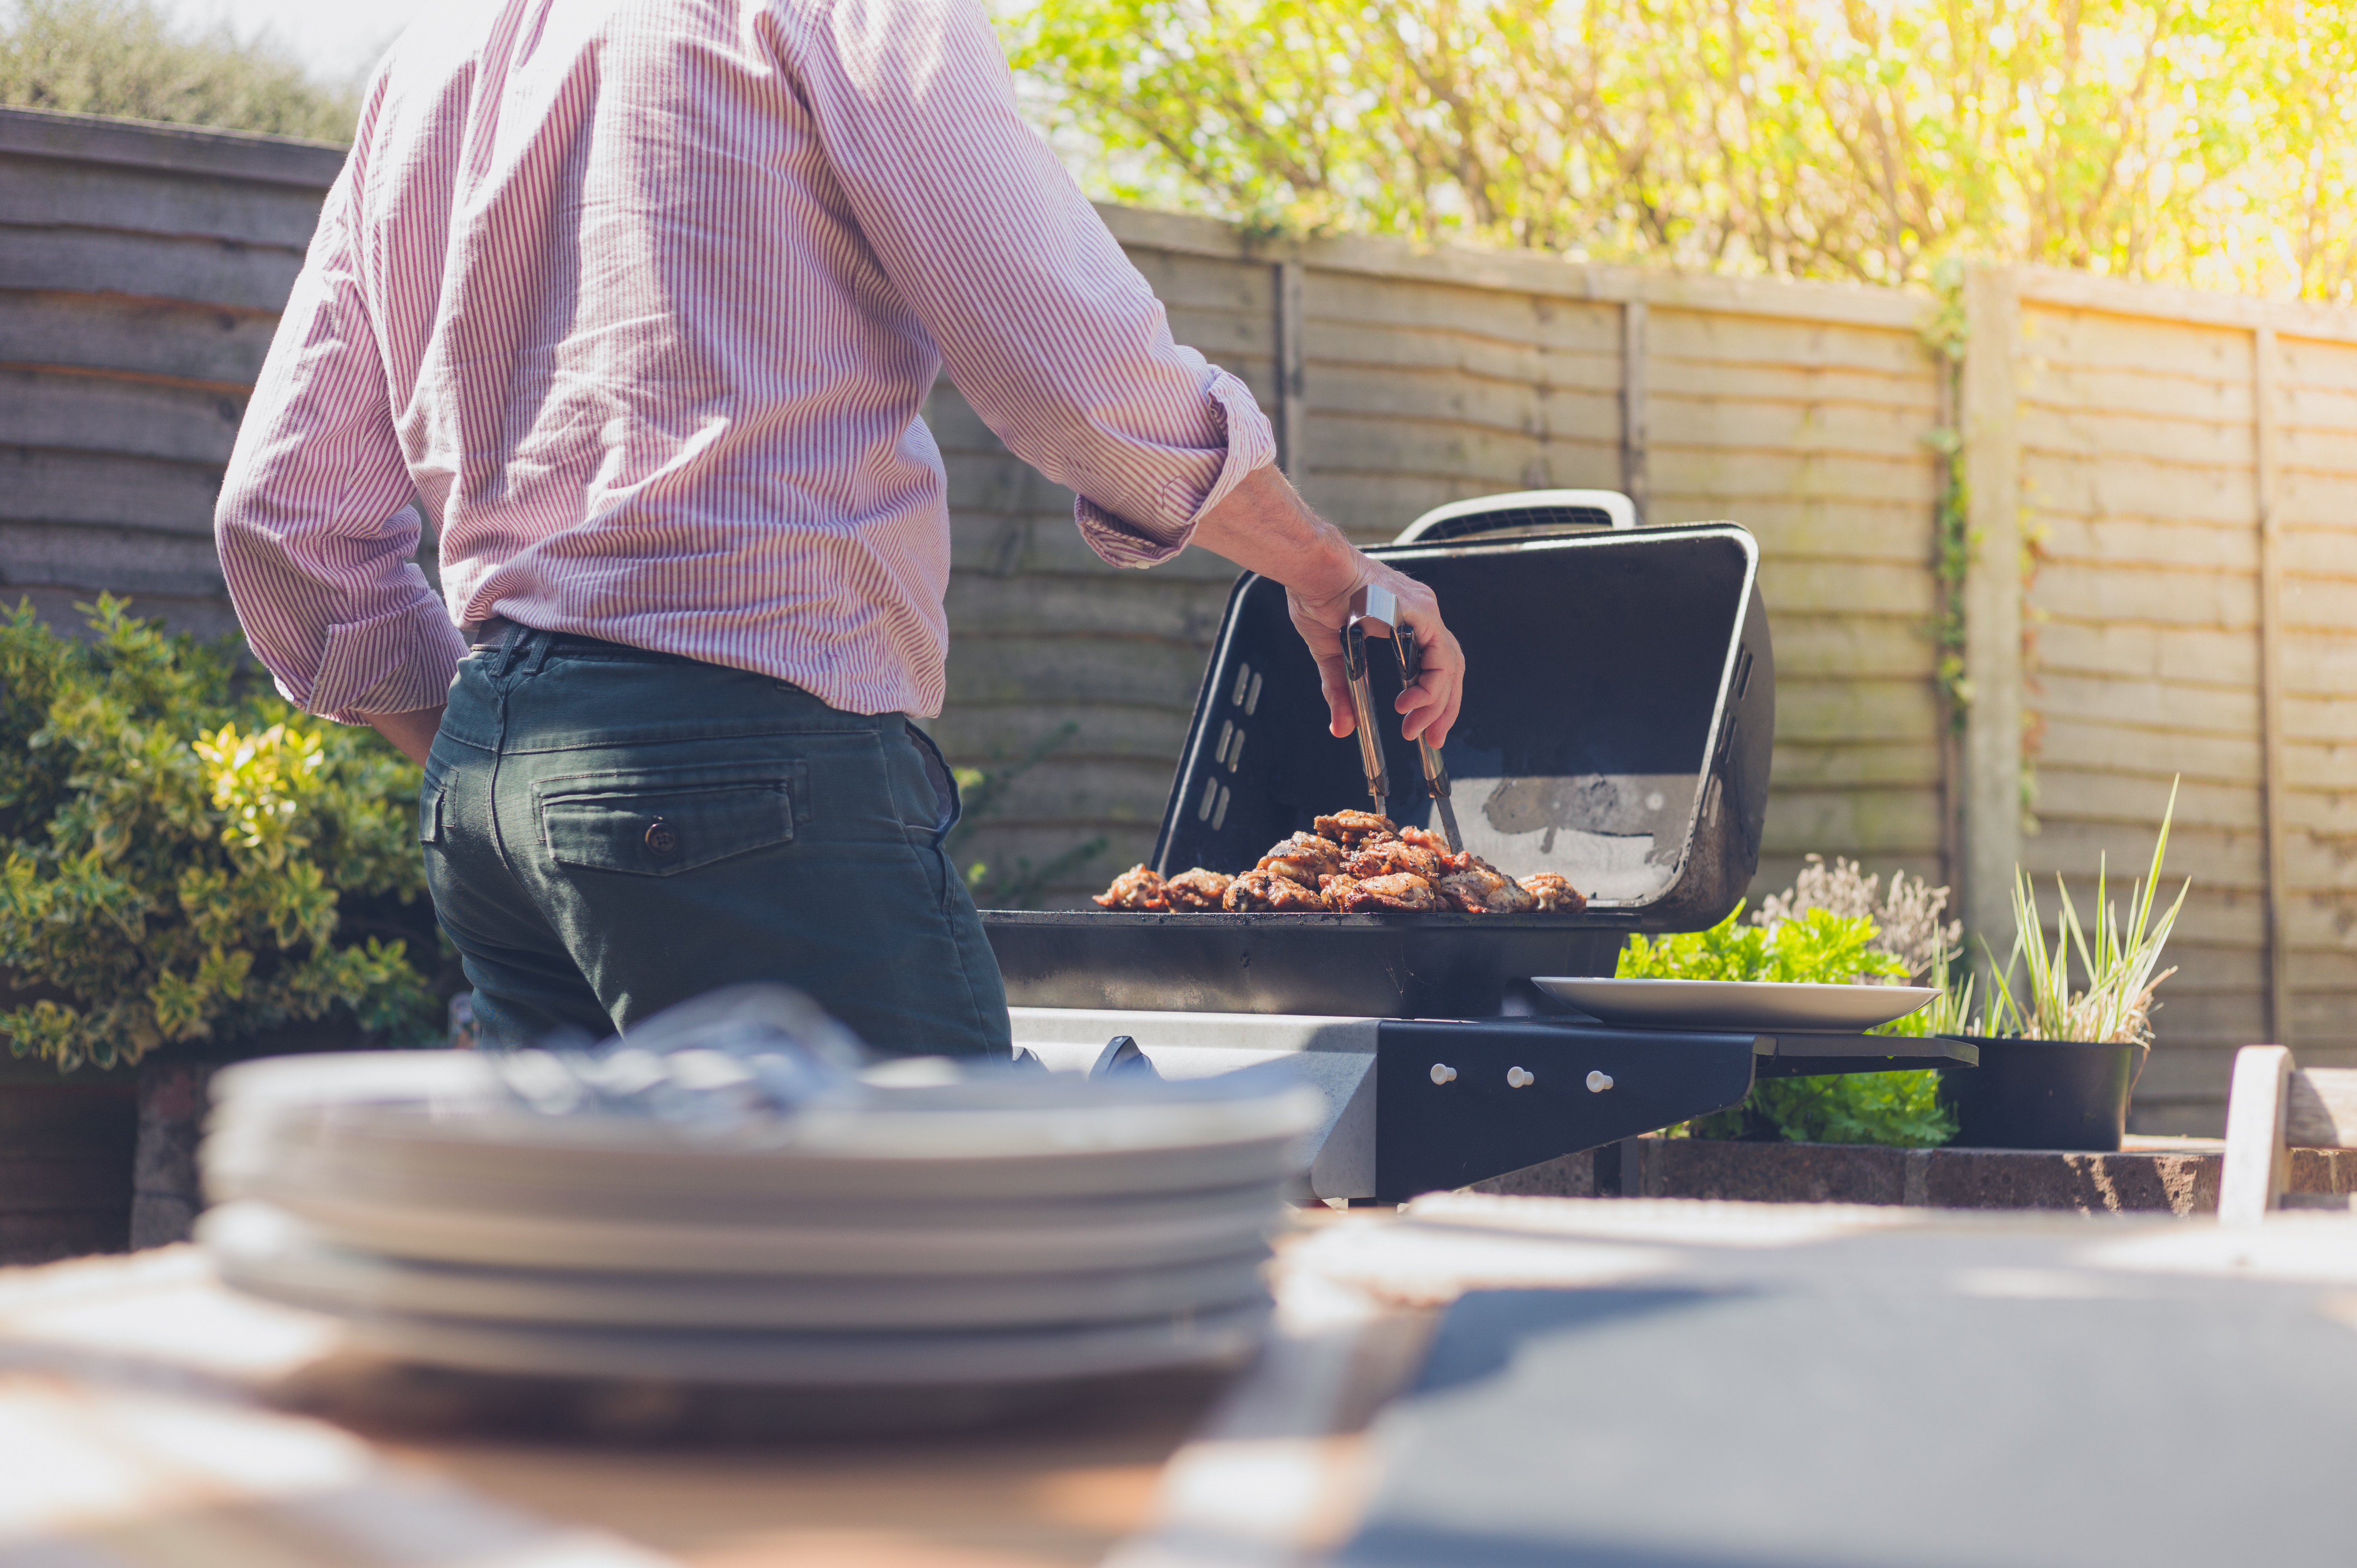 Stay BBQ Safe This Summer